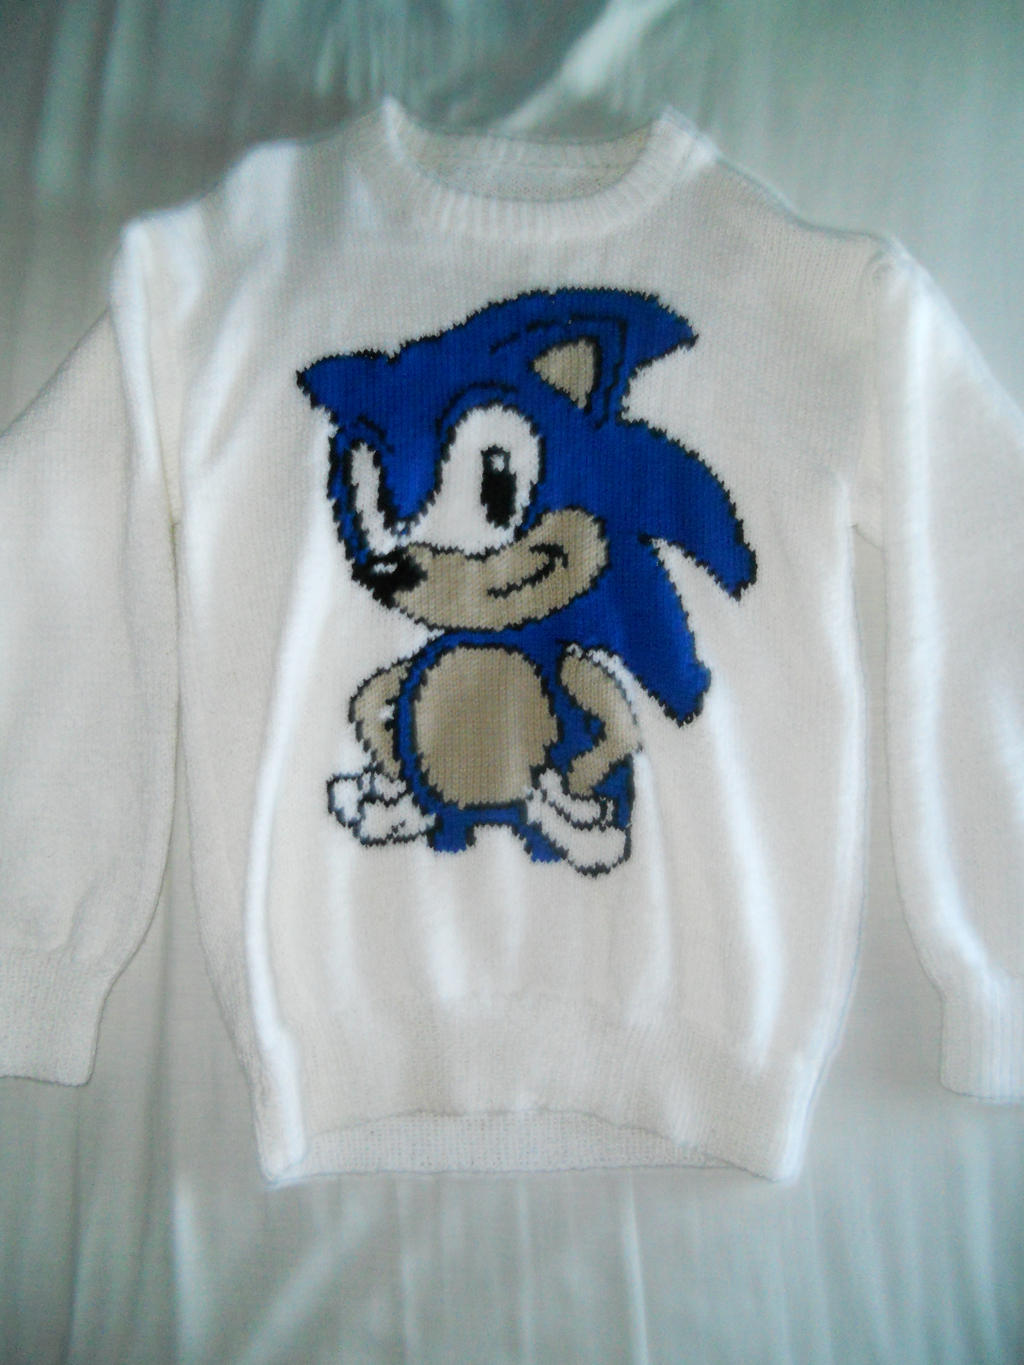 Knitting Pattern Sonic Hedgehog : Sonic the Hedgehog Knitted Jumper by BoomSonic514 on ...